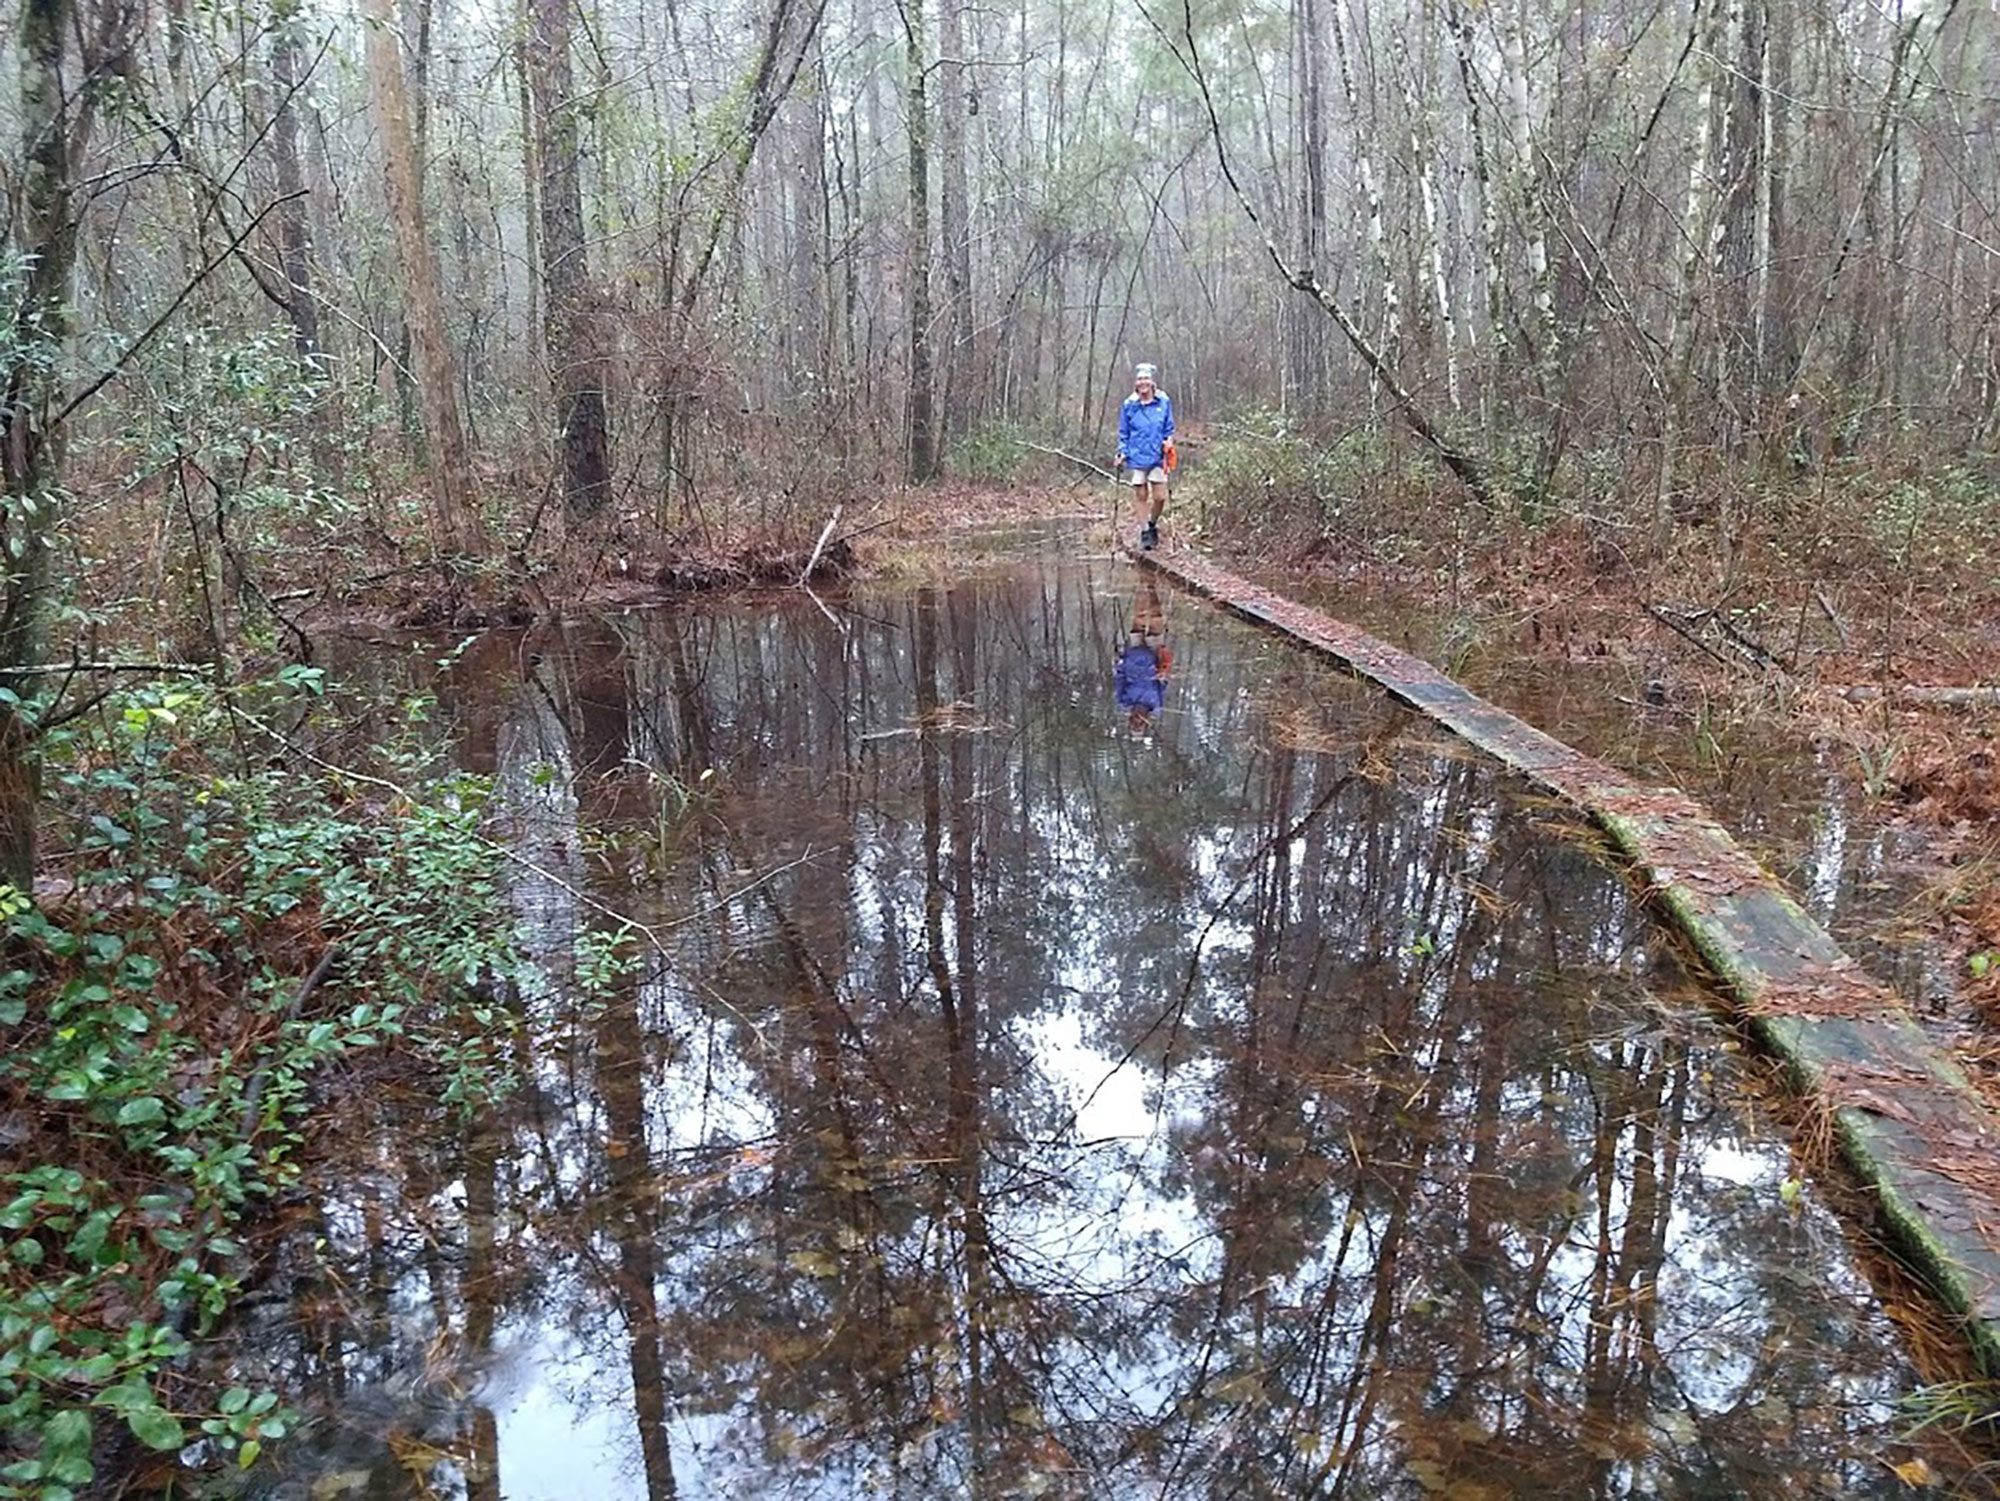 South Carolina's Palmetto Trail includes the mysterious Swamp Fox Passage, where you can expect to do a little wading through Wadboo and Dog Swamps. | Courtesy: Troy Allen Lair